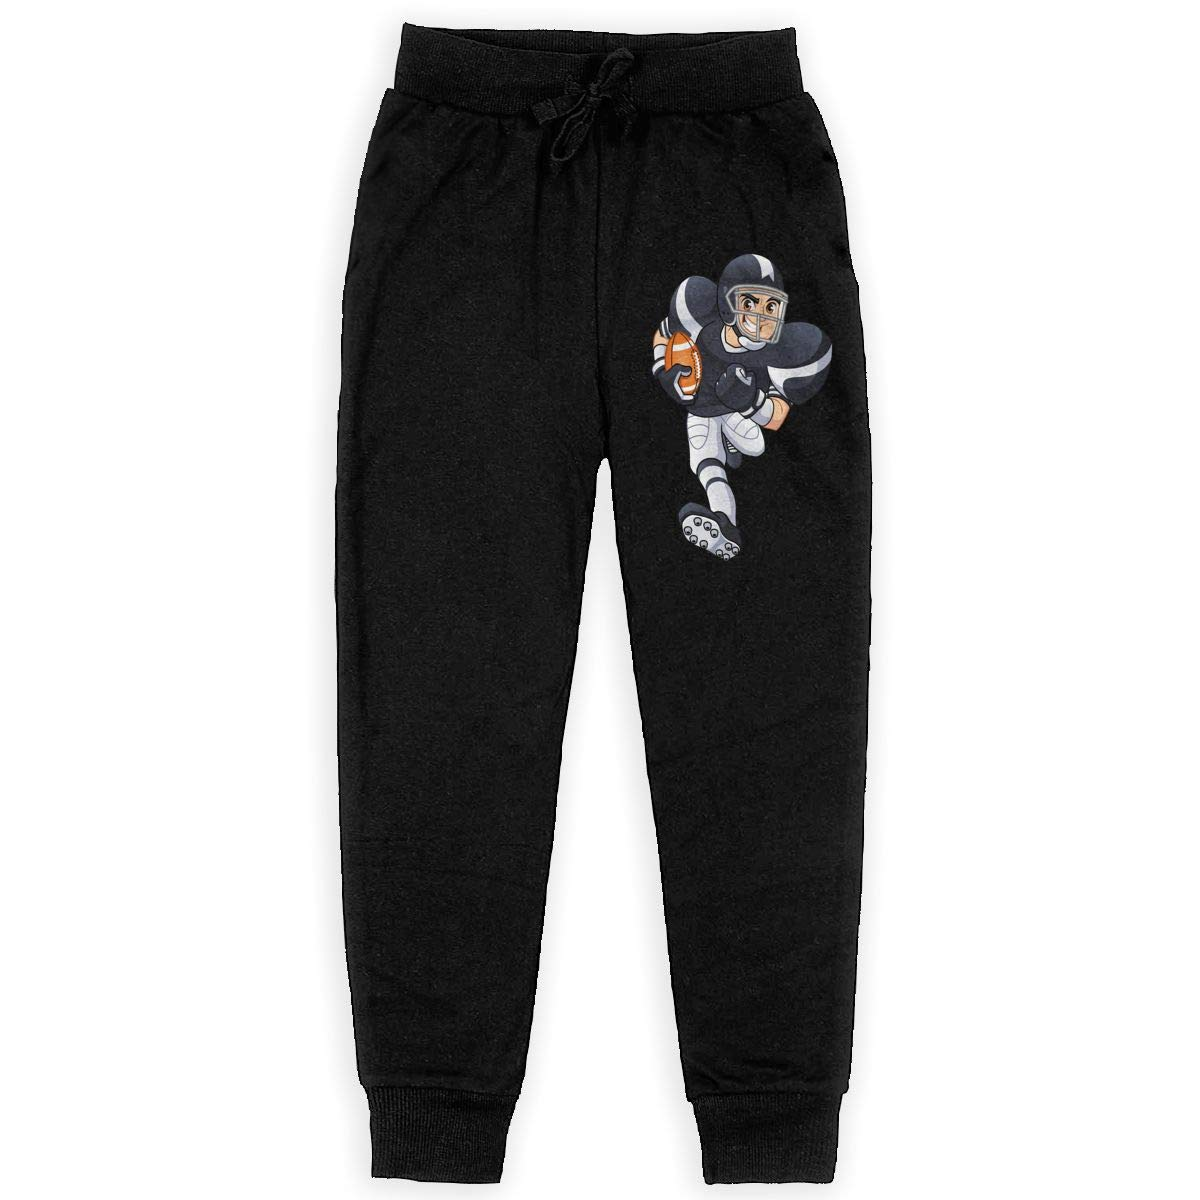 Boys Casual Sweatpants Cartoon American Football Player Adjustable Waist Running Pants with Pocket